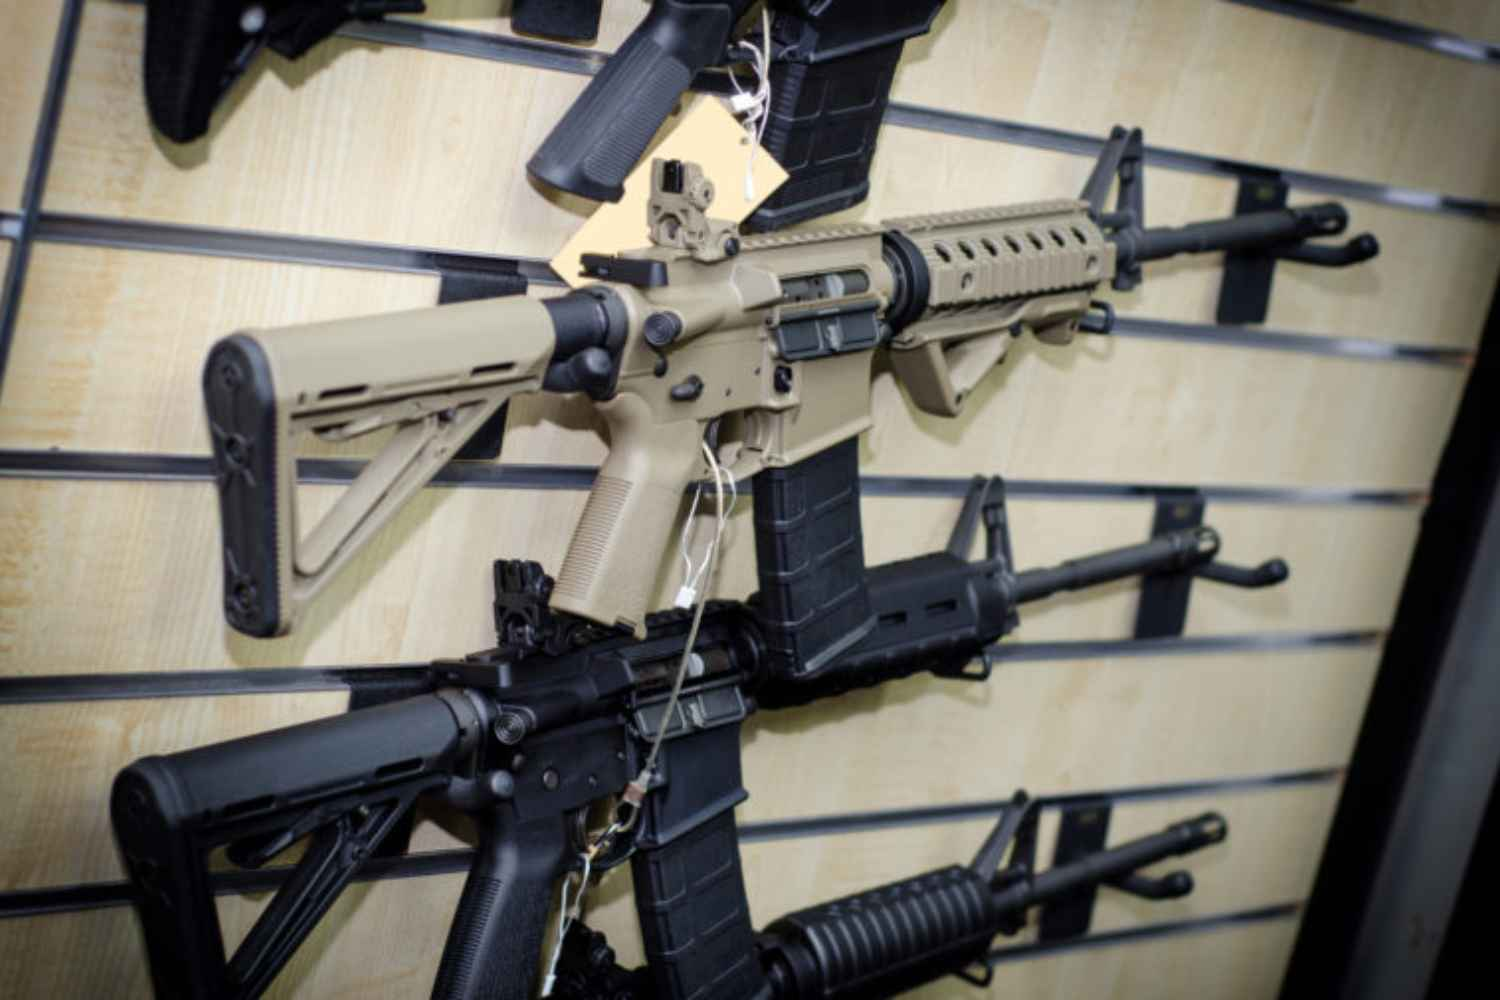 Opinion The Ar 15 Is Not Just Good For Home Defense It Is